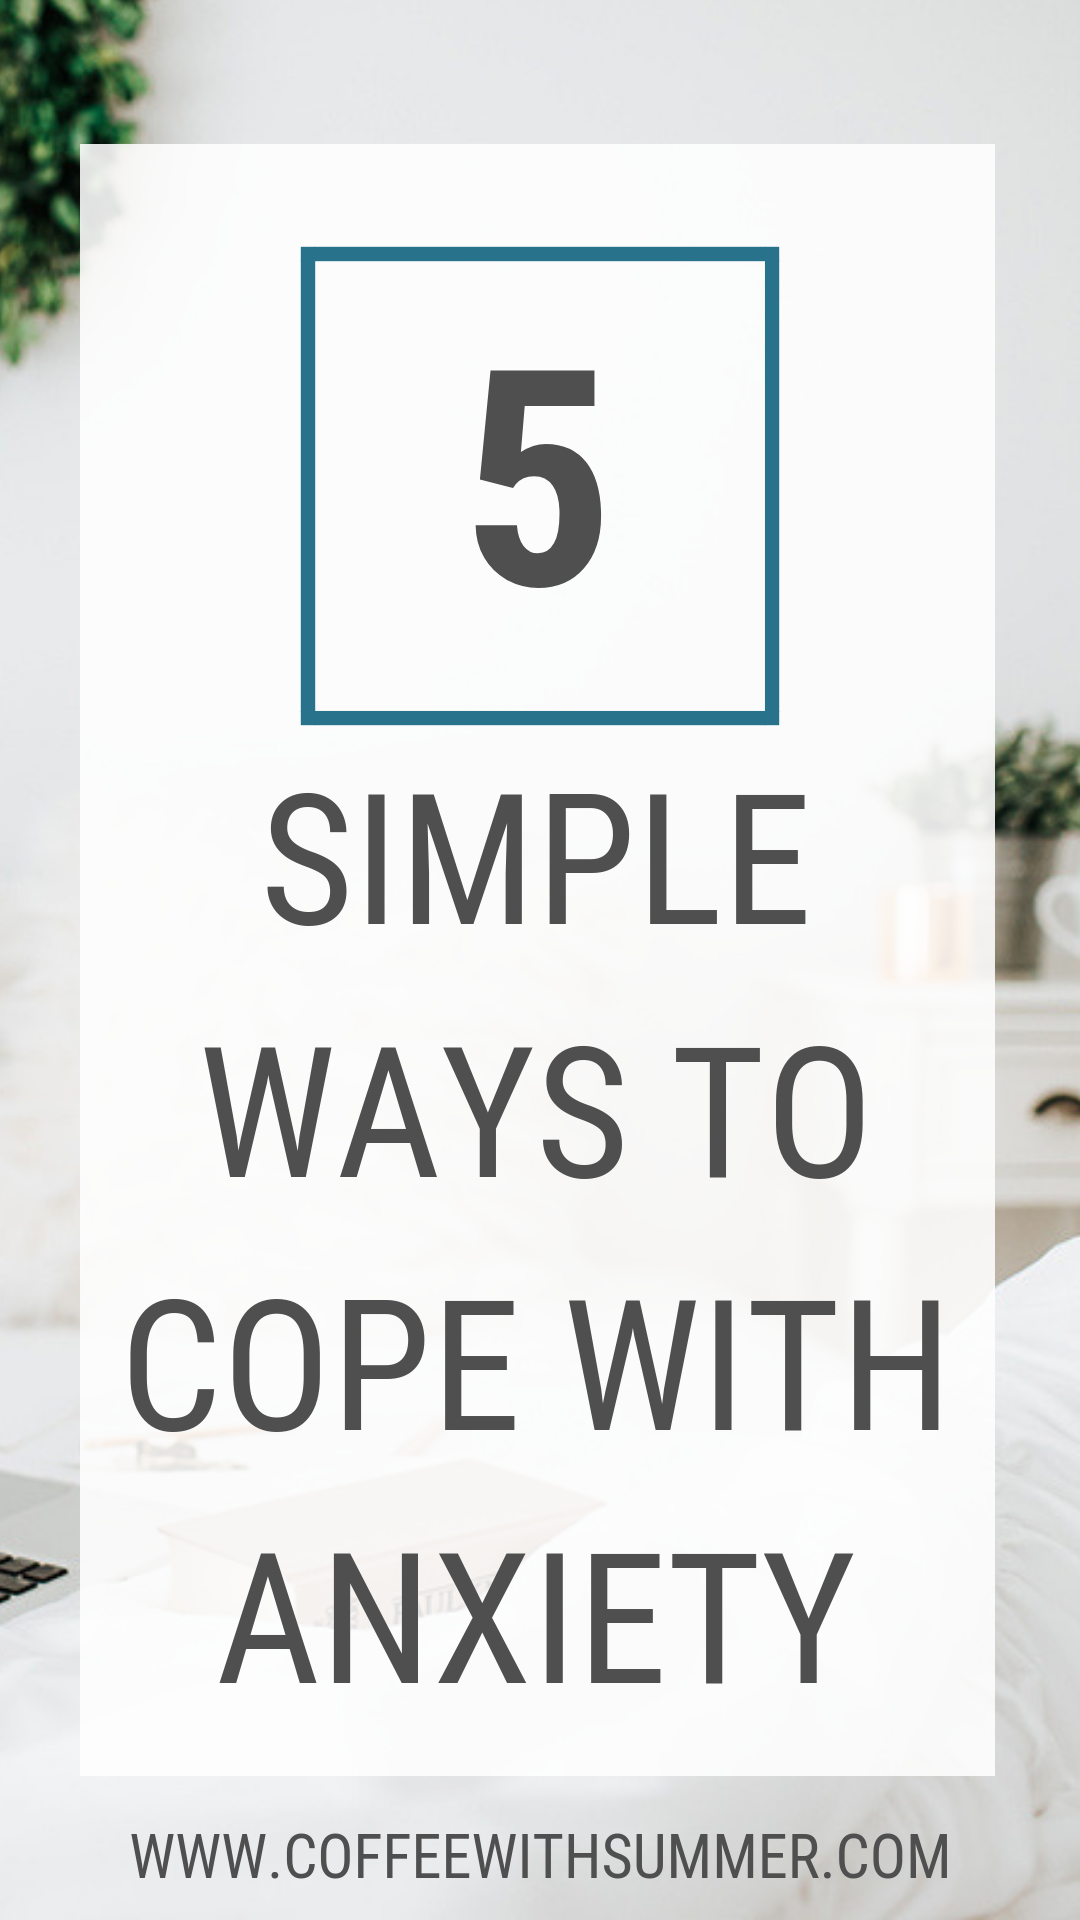 5 Simple Ways To Cope With Anxiety When Stressed